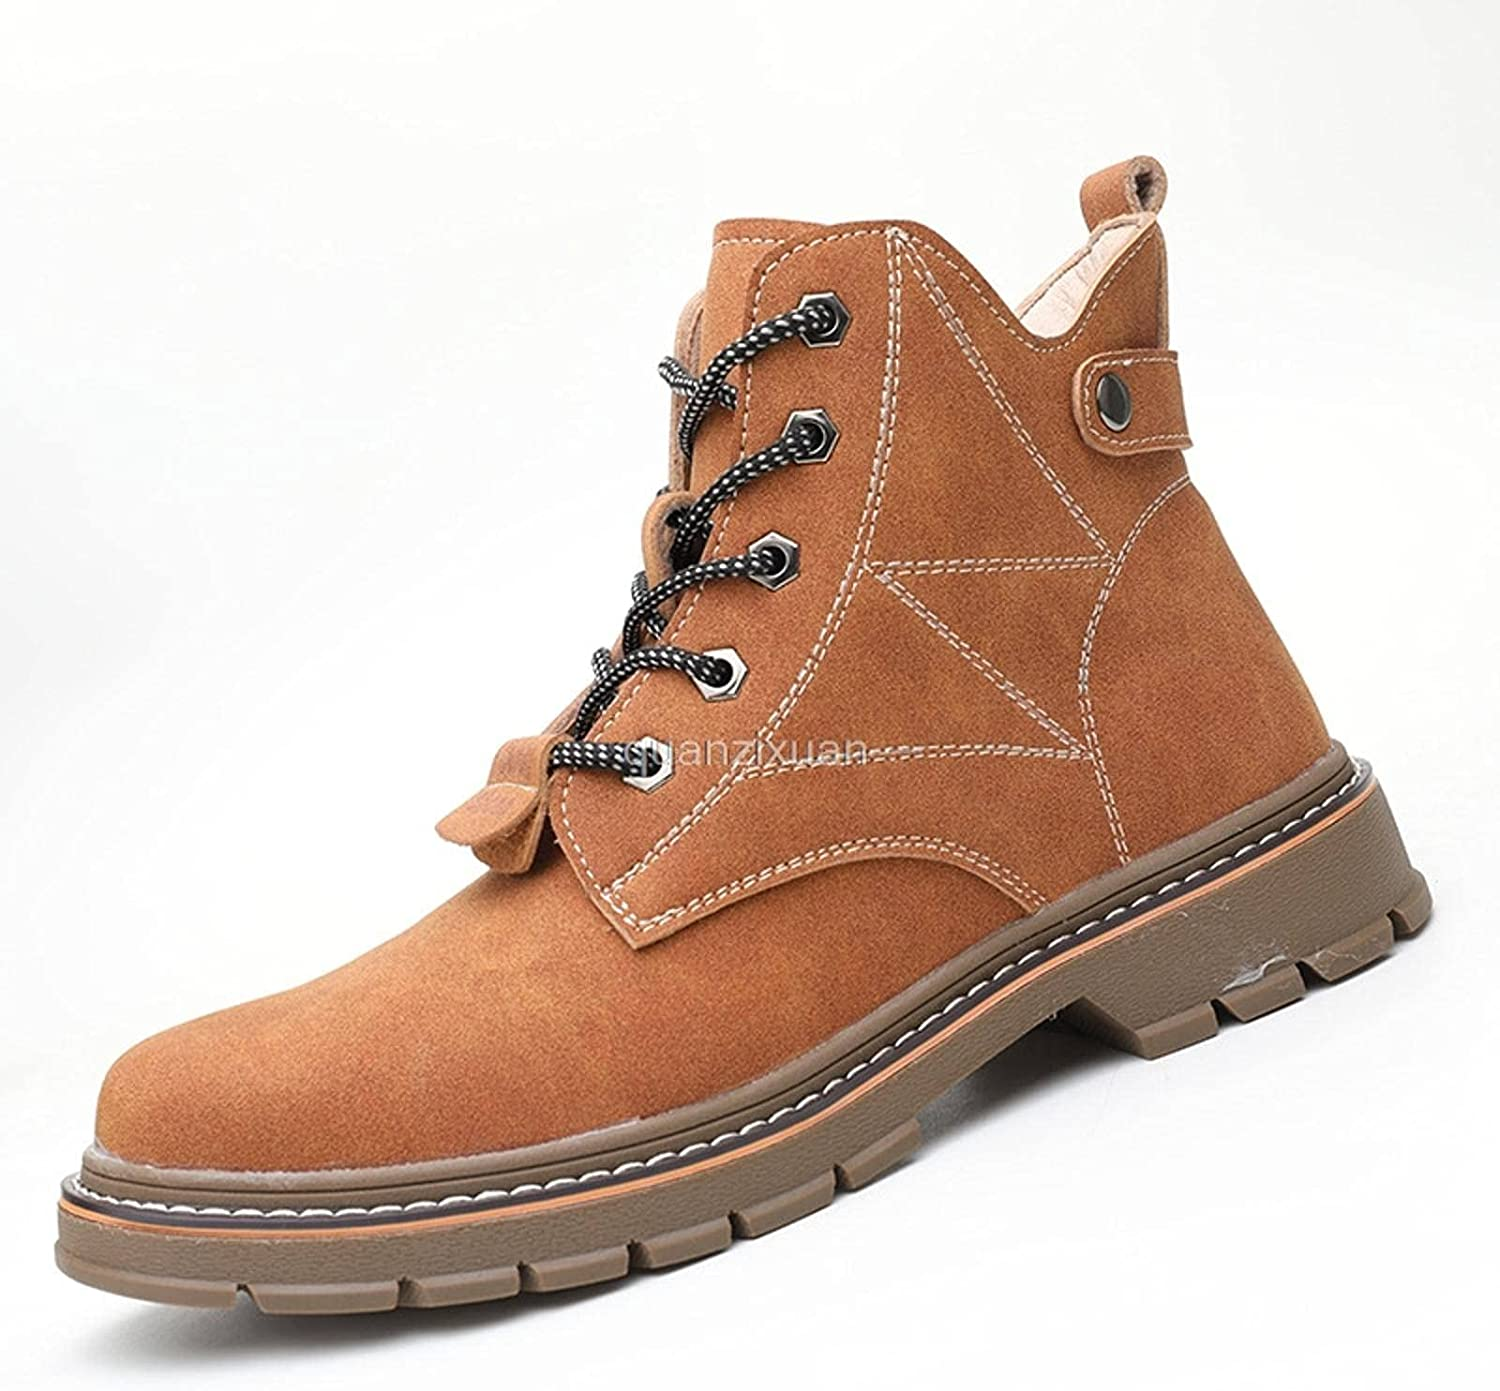 N\C Indestructible Work Safety High material Shoes Men Outdoor Max 49% OFF Steel Toe